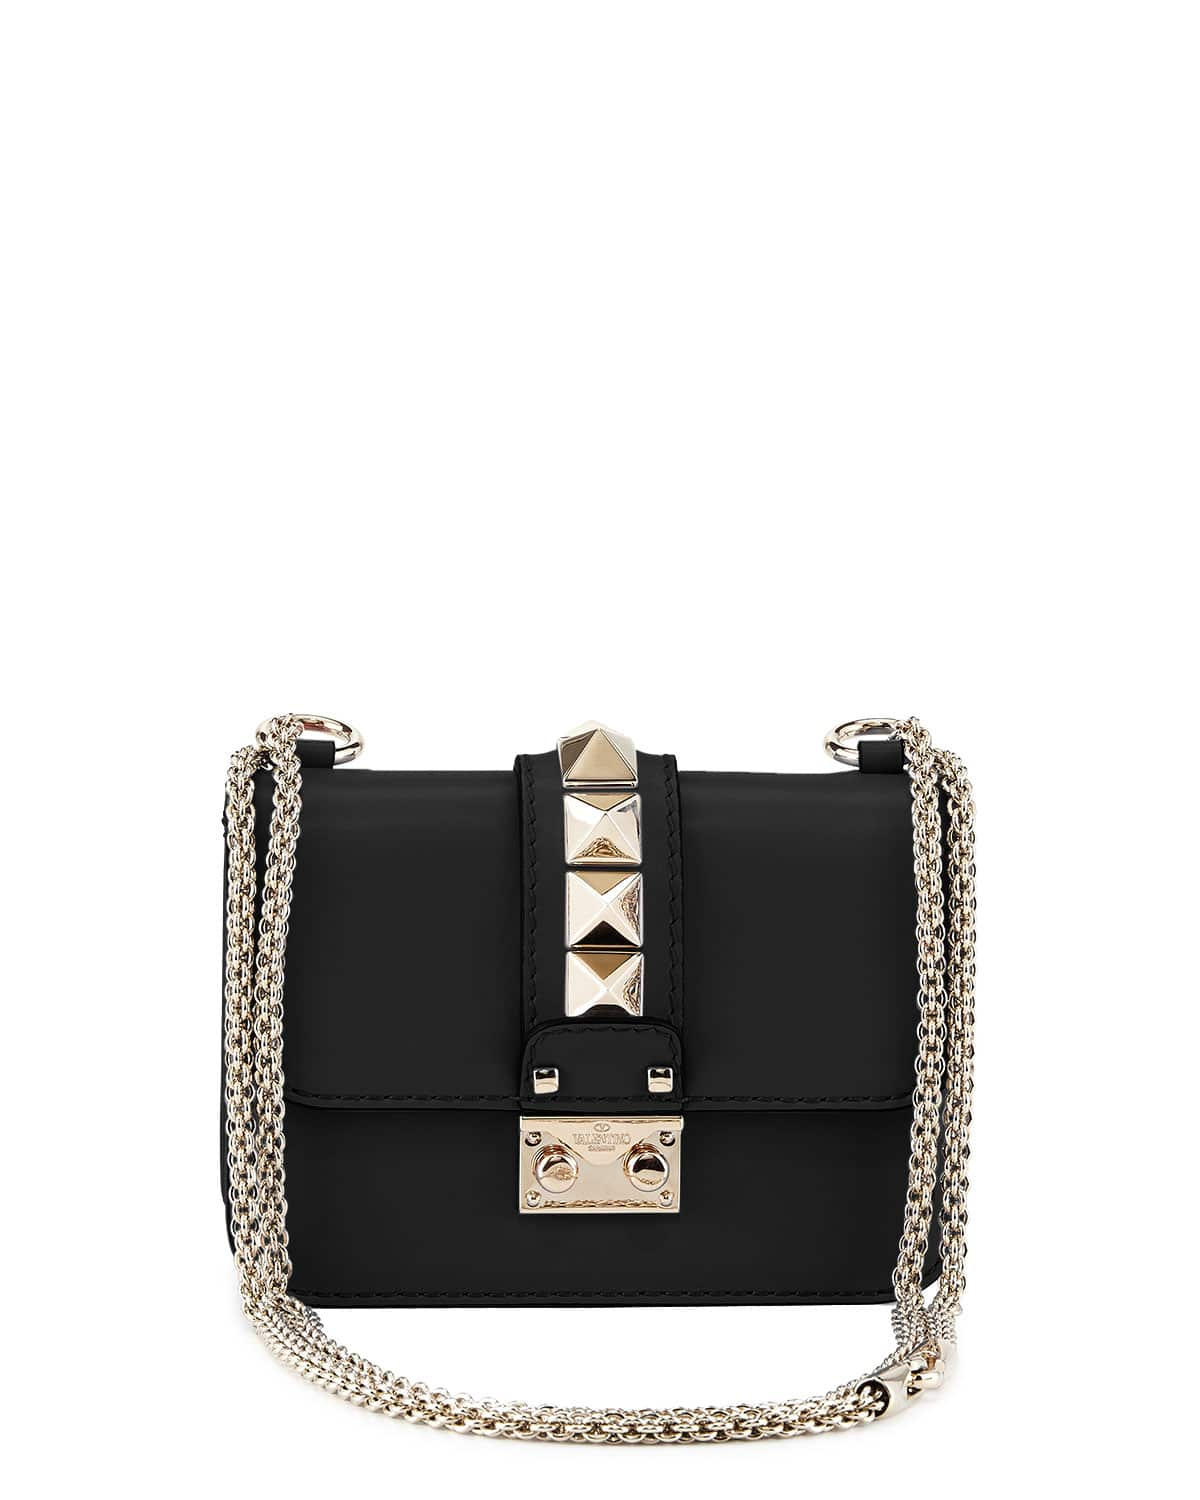 4b283258cf8c Valentino Rockstud Bags and Shoes from the Cruise 2015 Collection ...